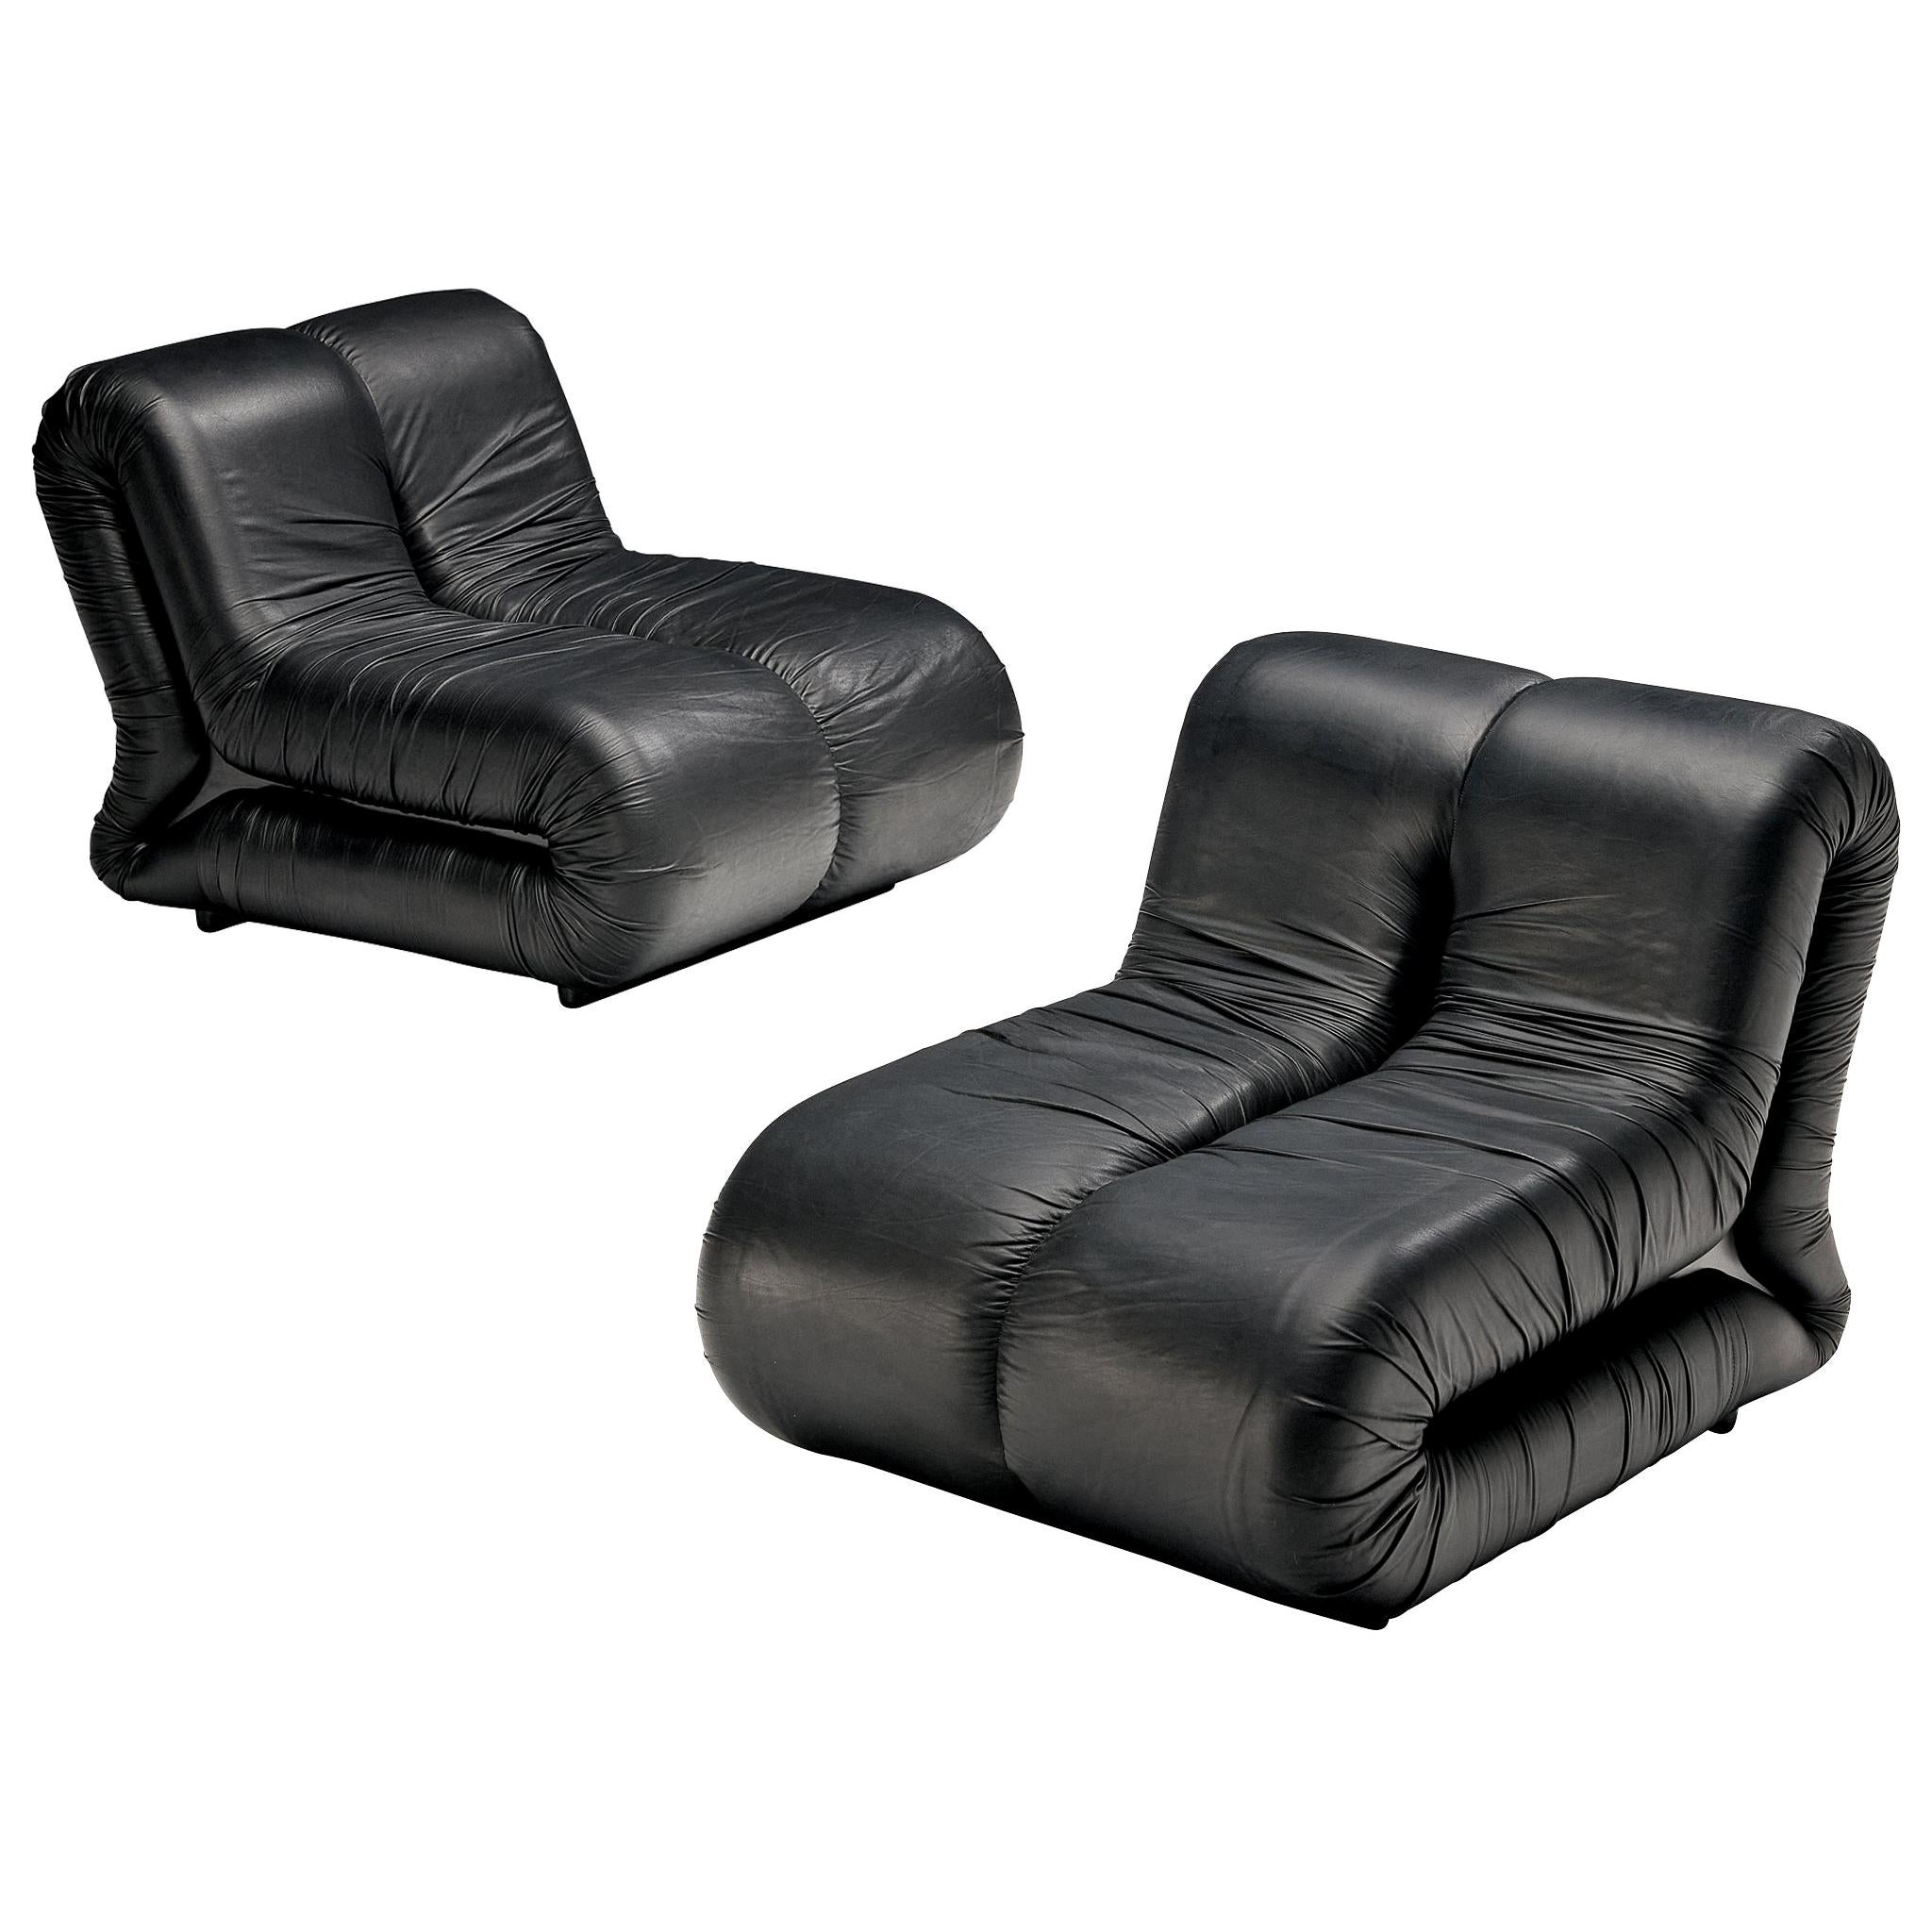 Claudio Vagnoni for 1P Pair of 'Pagru' Lounge Chairs in Black Leather